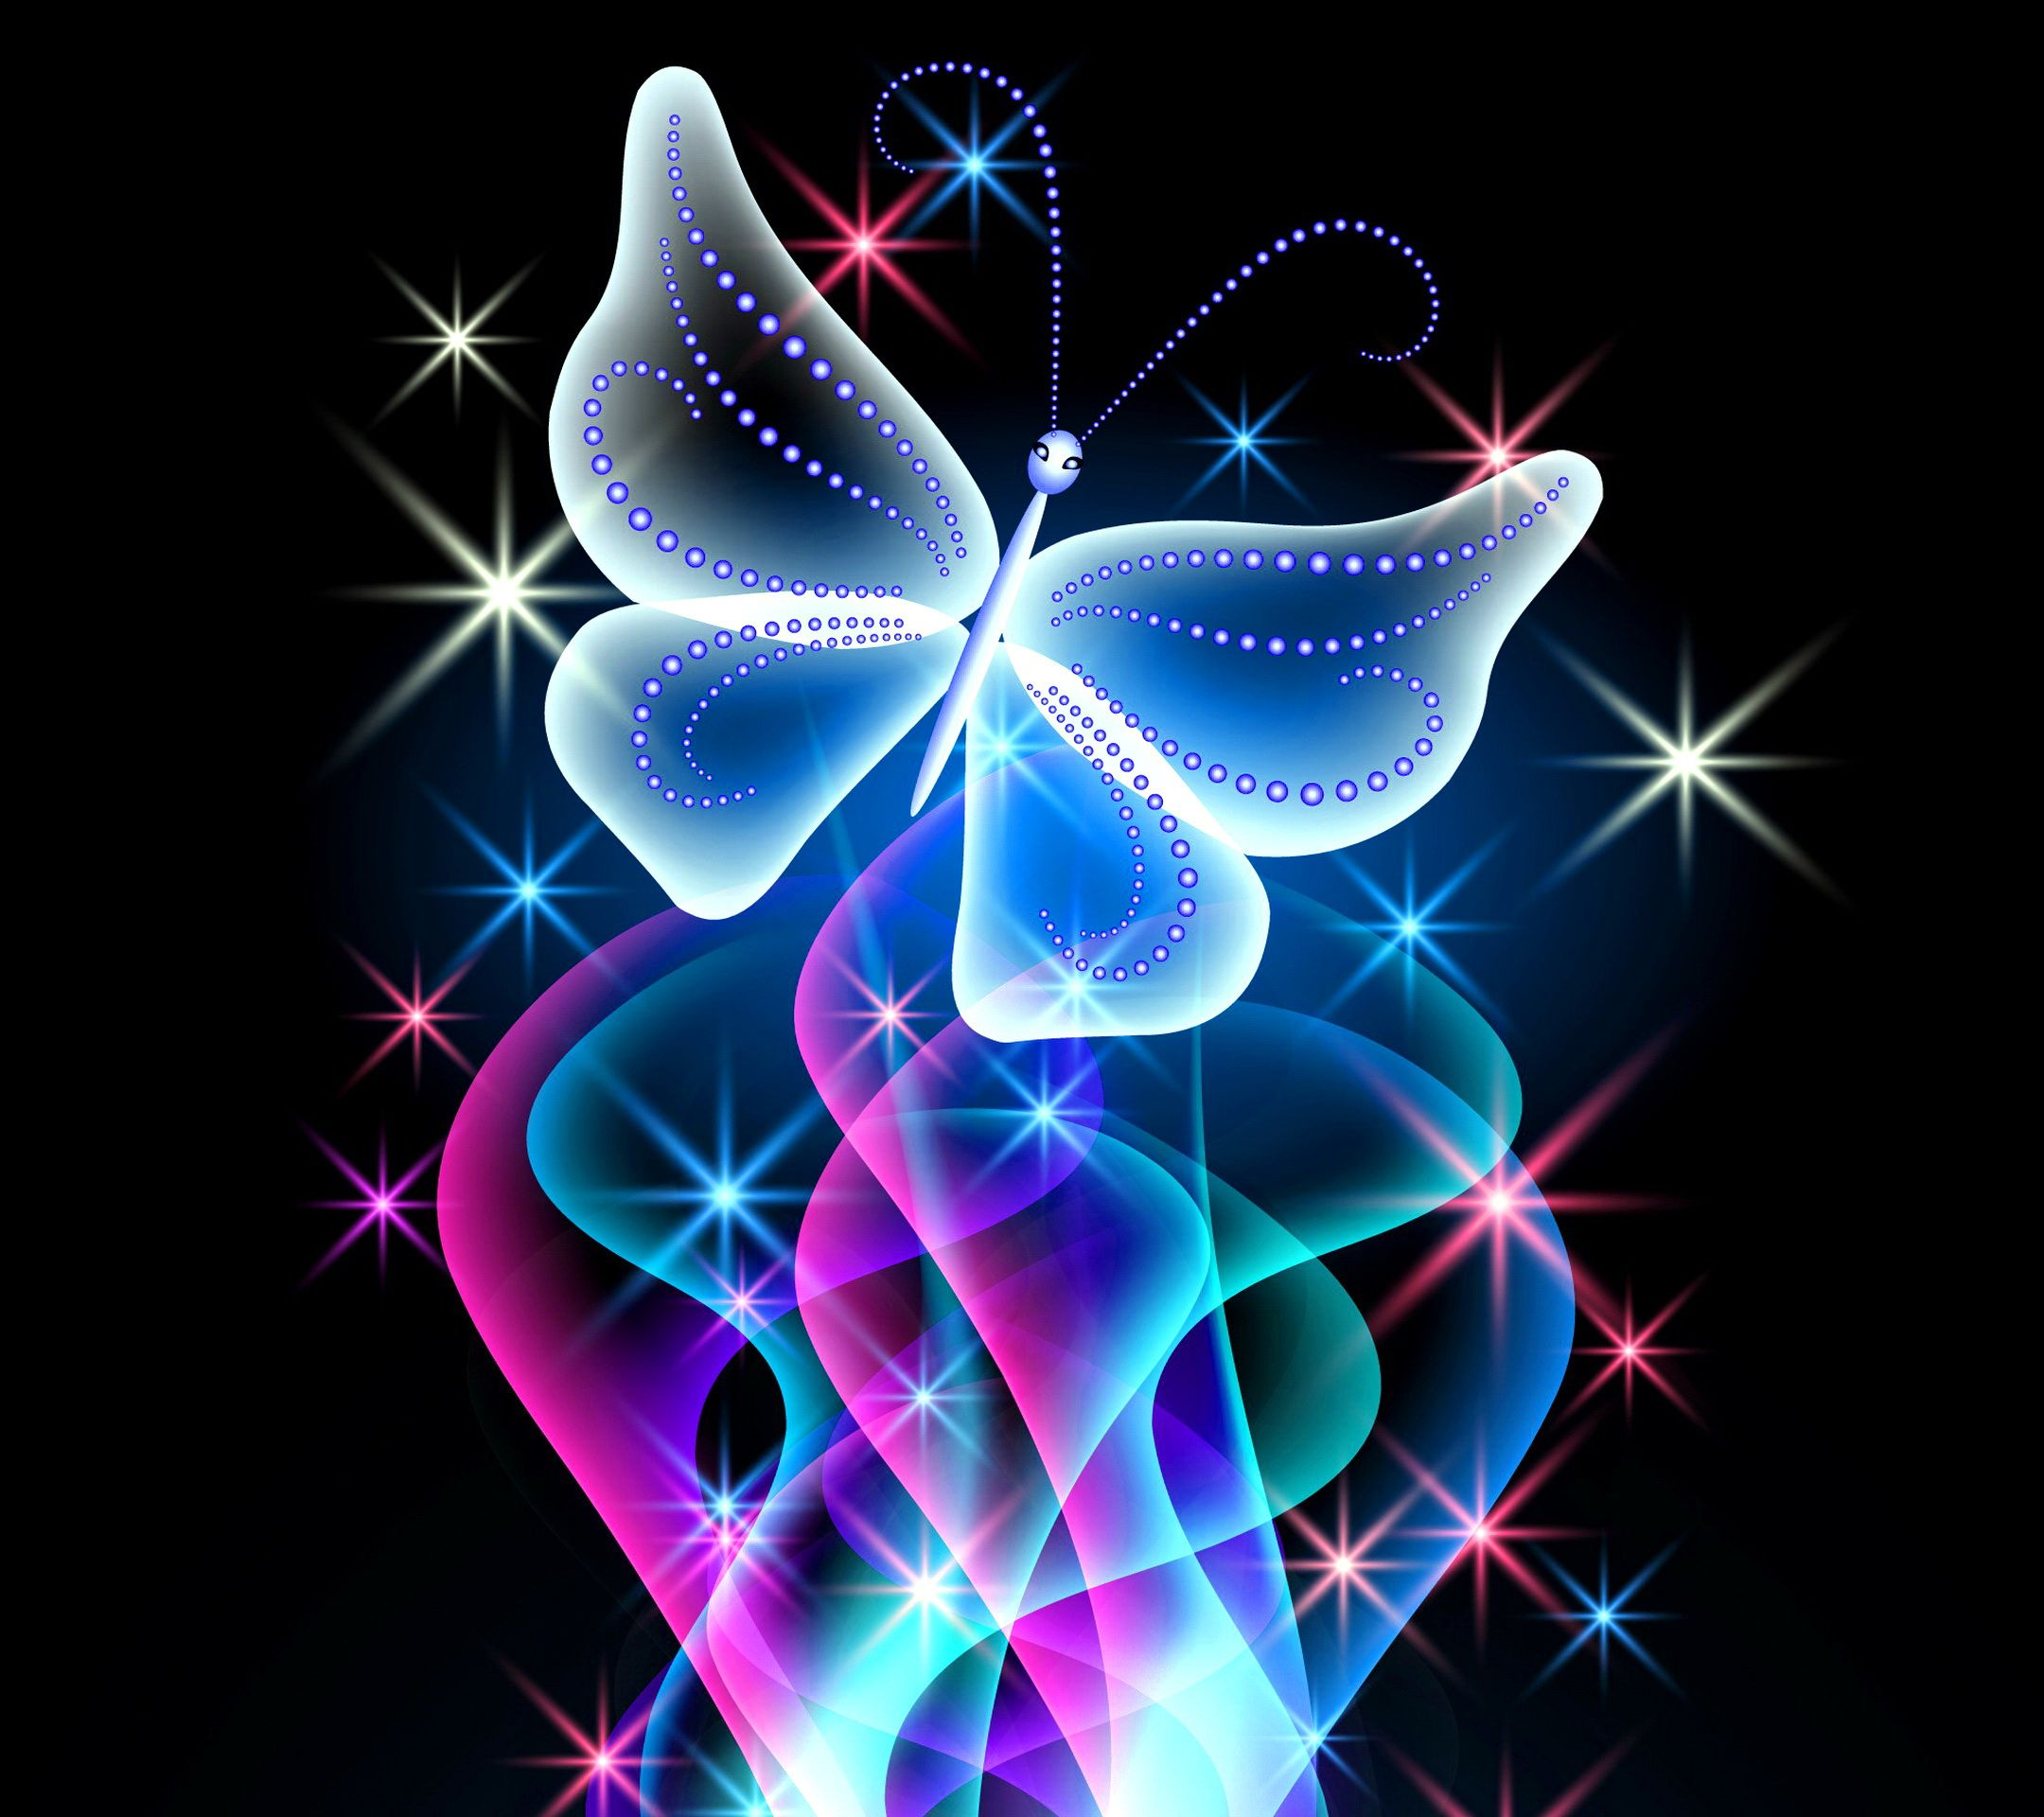 Butterfly fractal background photo